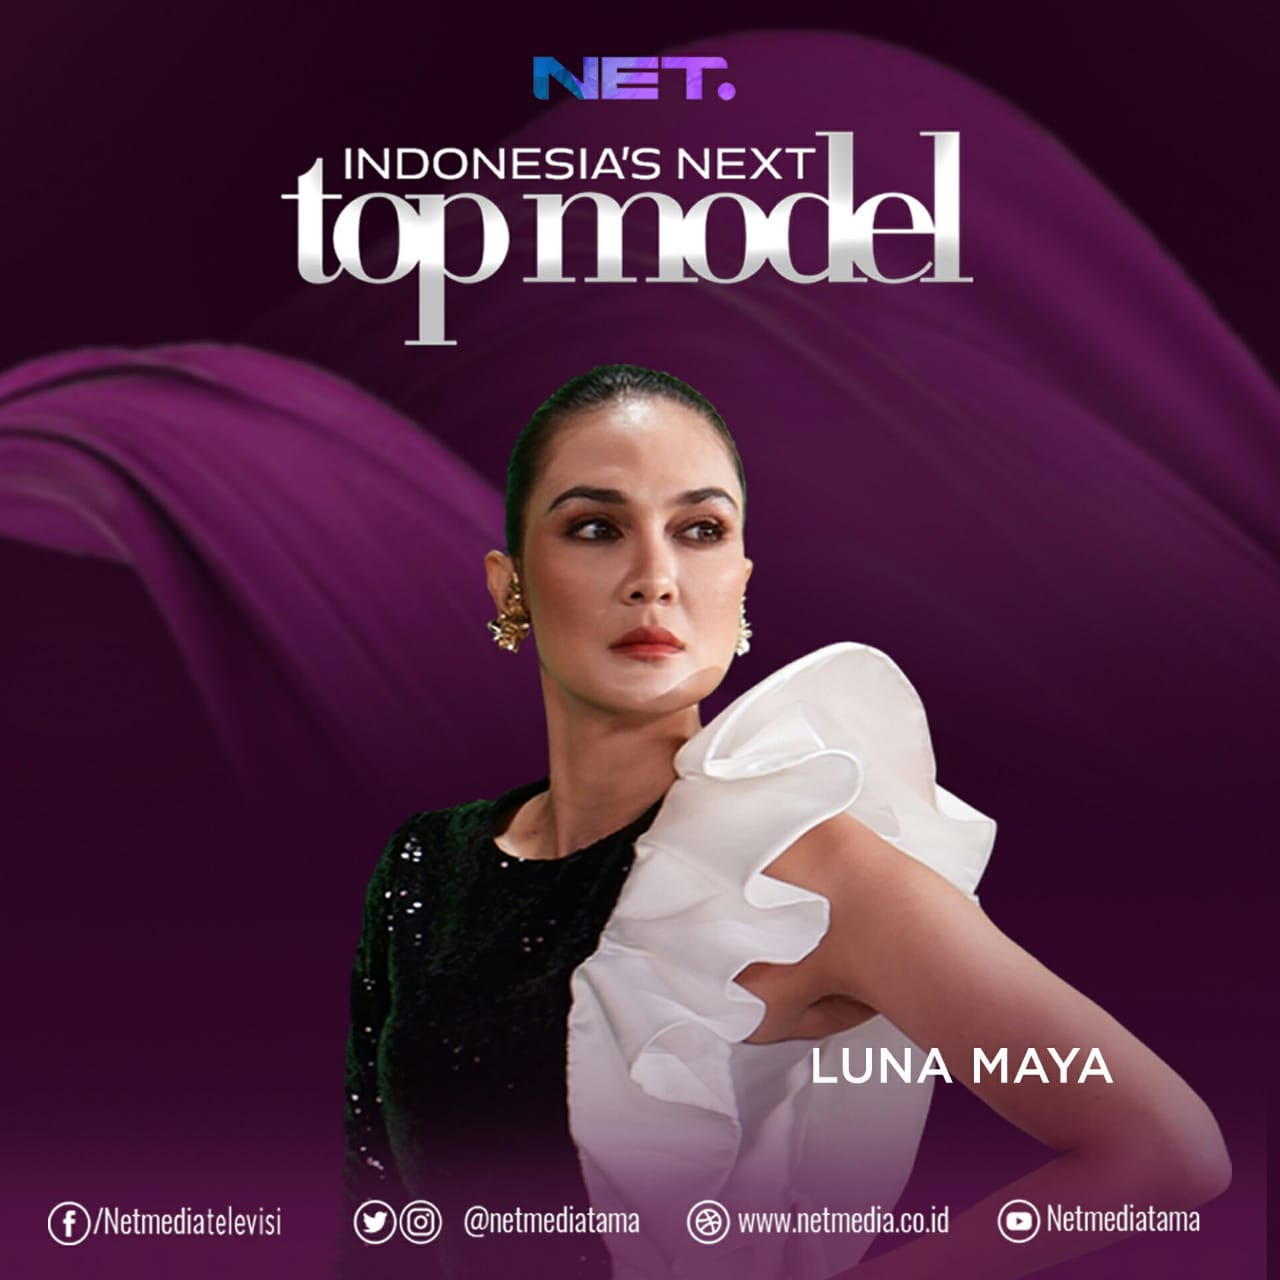 Luna Maya the Judge of Indonesia's Next Top Model / @intm_nettv on Instagram